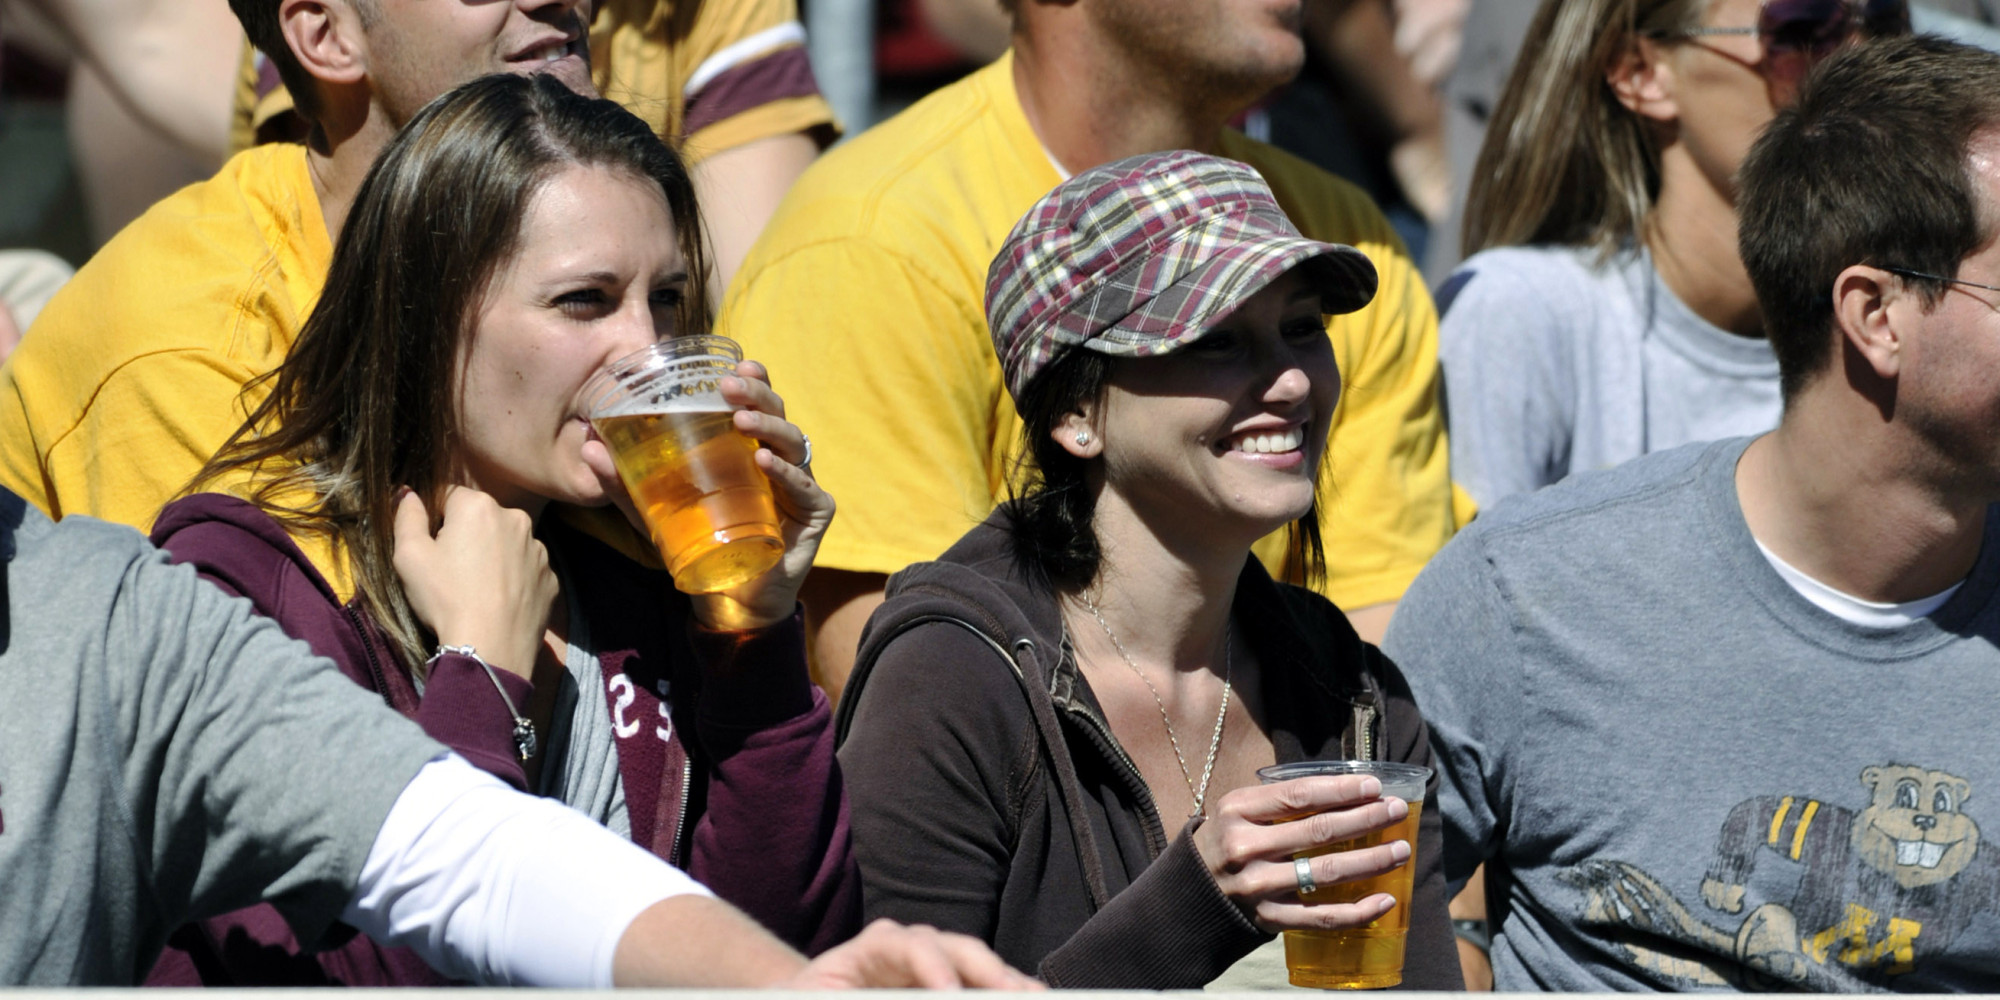 Beer may attract fans to college football games but teams ...